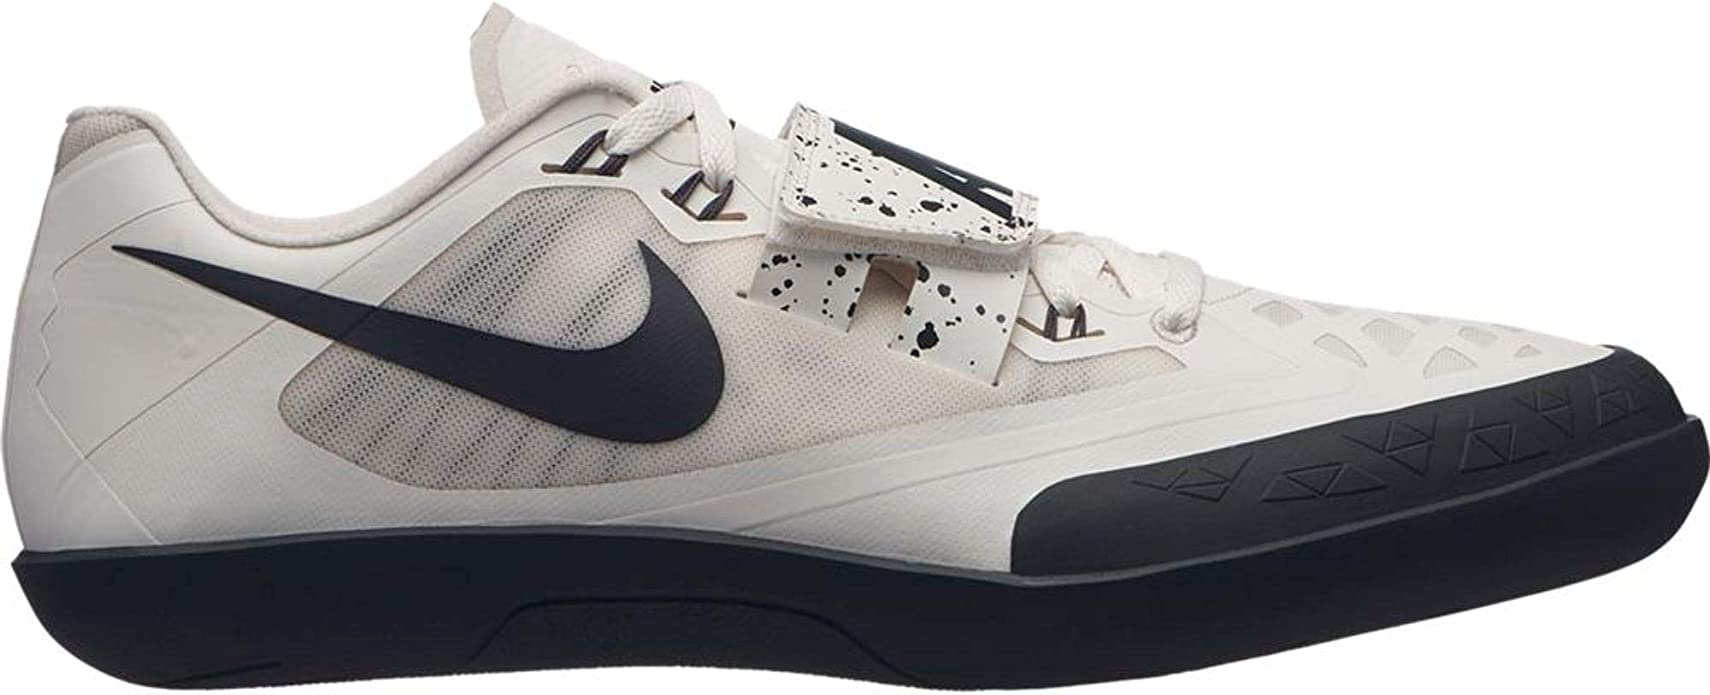 Nike Zoom Sd 4 Mens 685135-002 Size